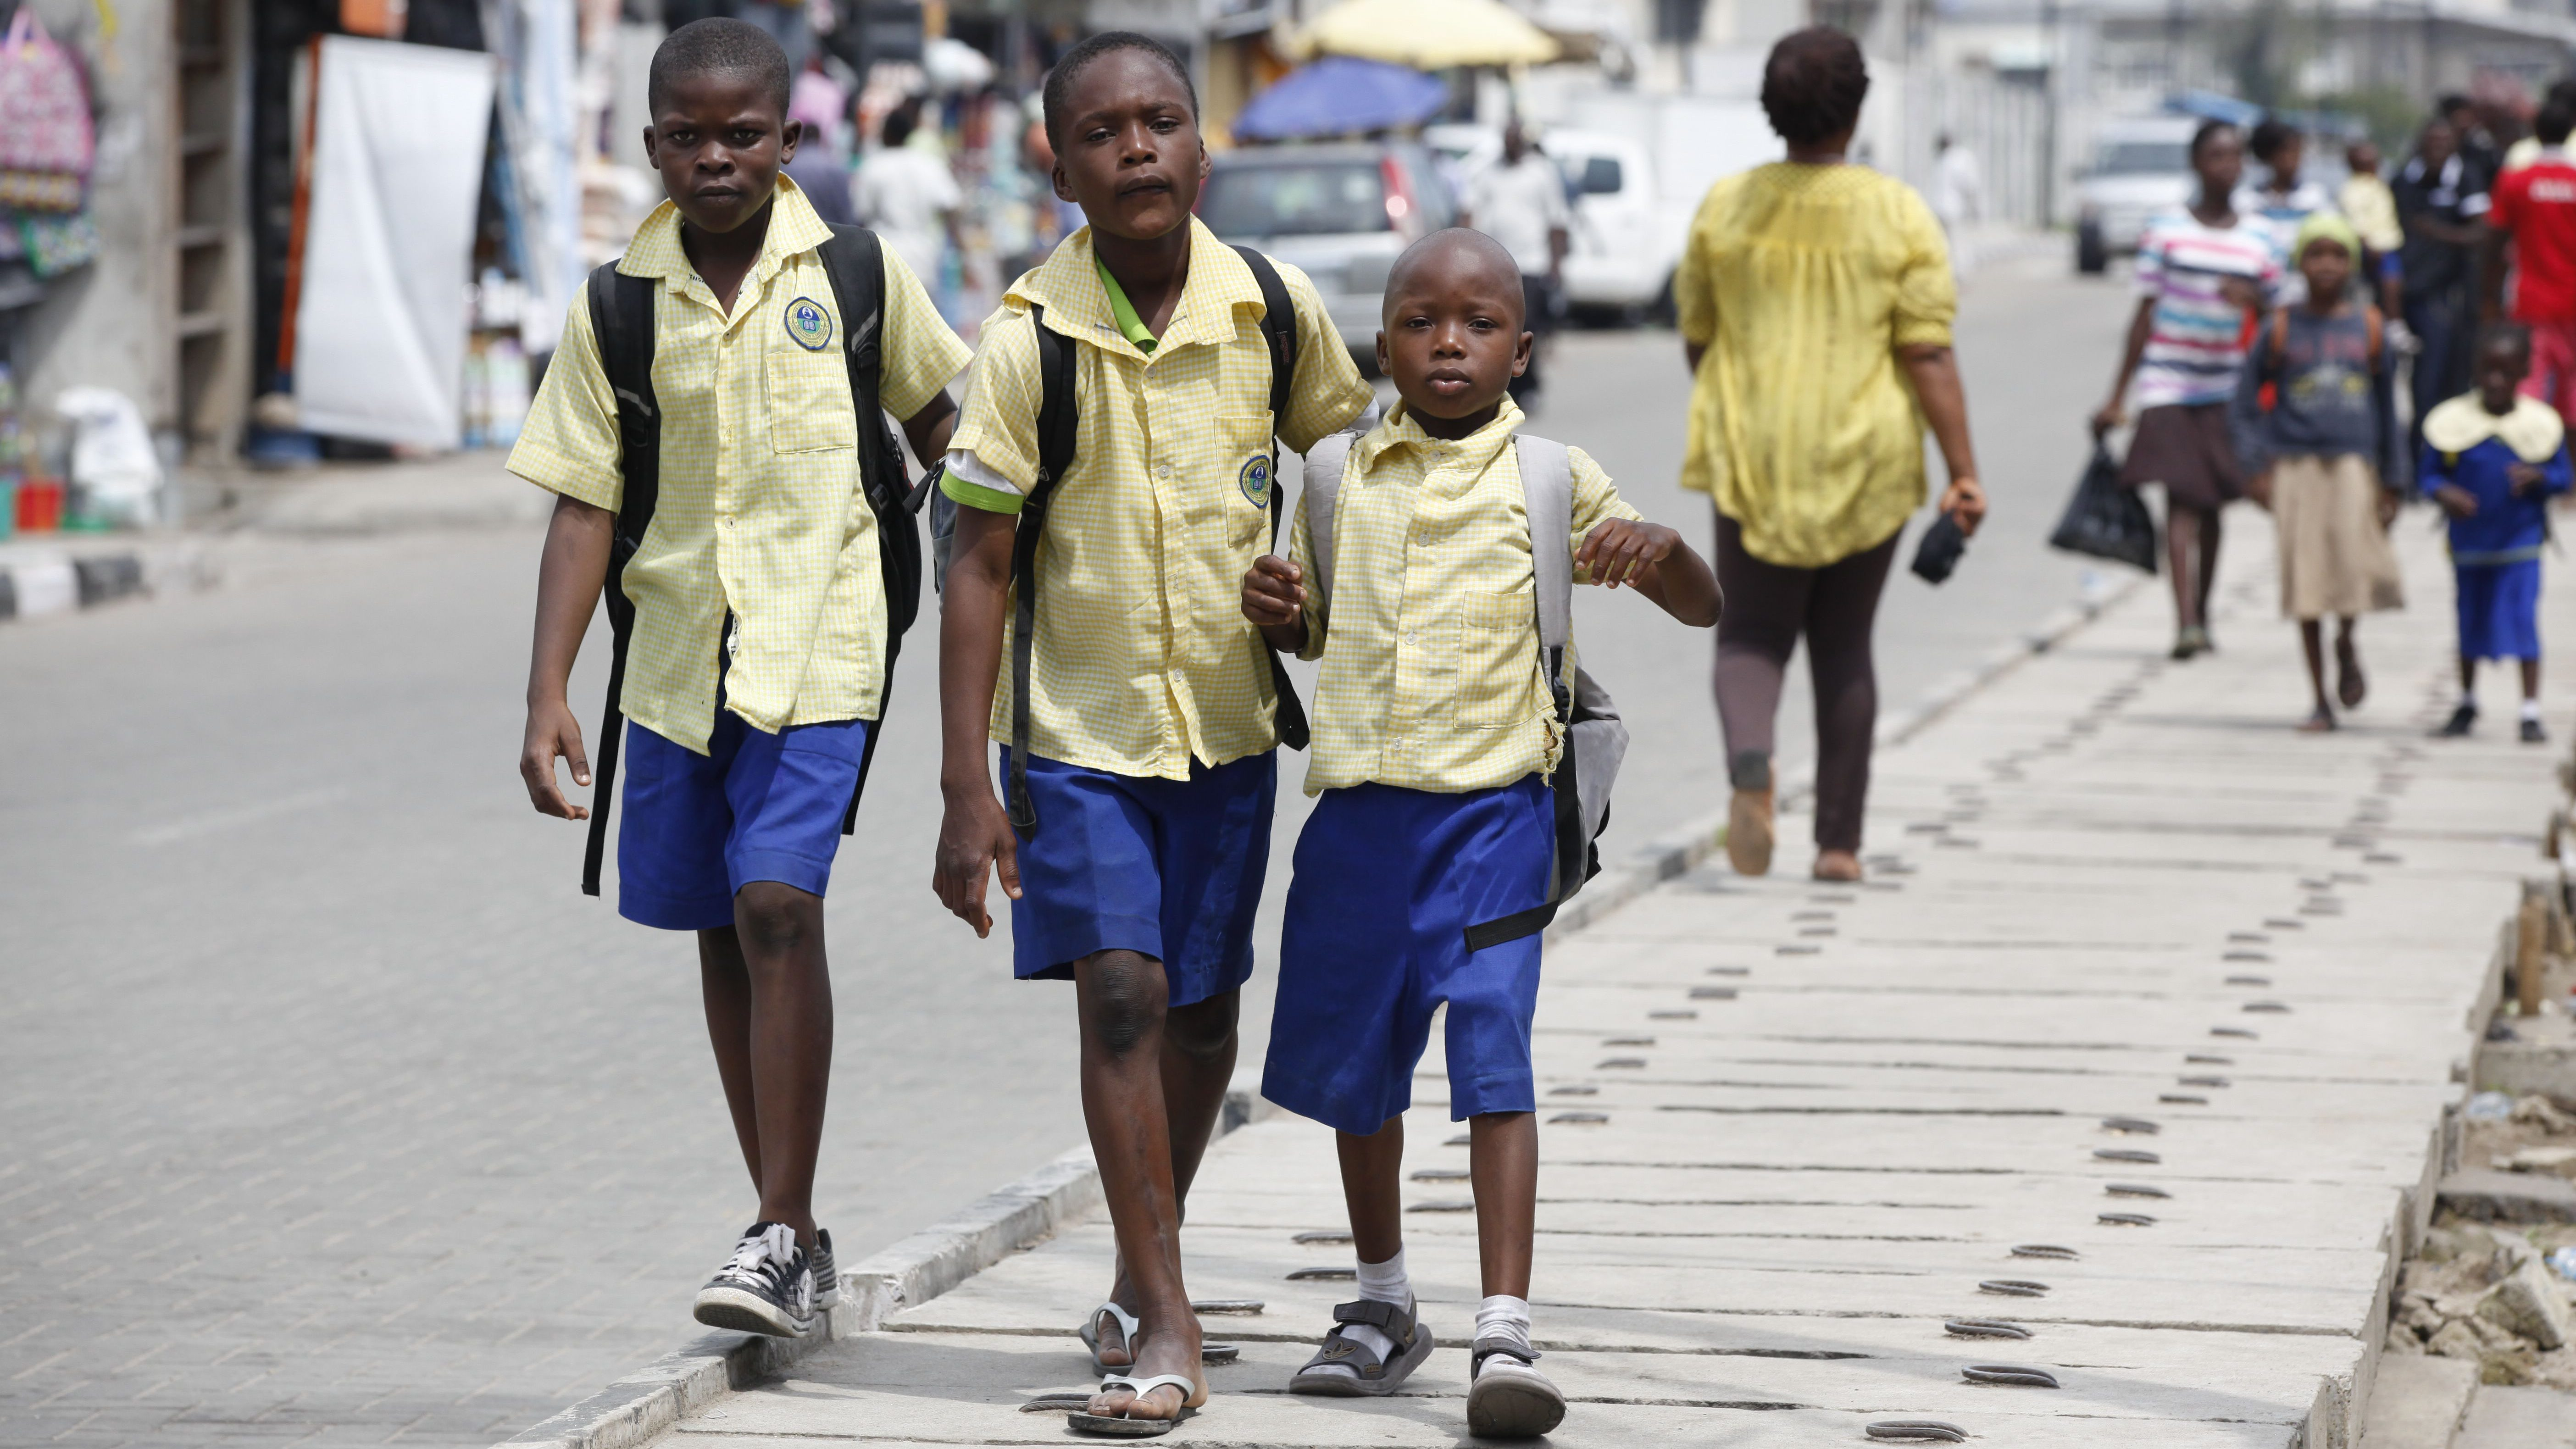 School children walk in the street in the Obalende area of Lagos, Nigeria, Tuesday, June 17, 2014. About 30 million primary school-aged children in sub-Saharan Africa are not in class, partially because of conflict and poverty, and progress to get them back to school has stalled, two U.N. agencies said. The situation is especially dire in West and Central Africa, which has the largest proportion of children out of school of any region in the world, said a pair of reports published Monday by UNICEF, the U.N. children's agency, and the statistics arm of UNESCO, the U.N. cultural and education agency. (AP Photo/Sunday Alamba)  (AP Photo/Sunday Alamba)